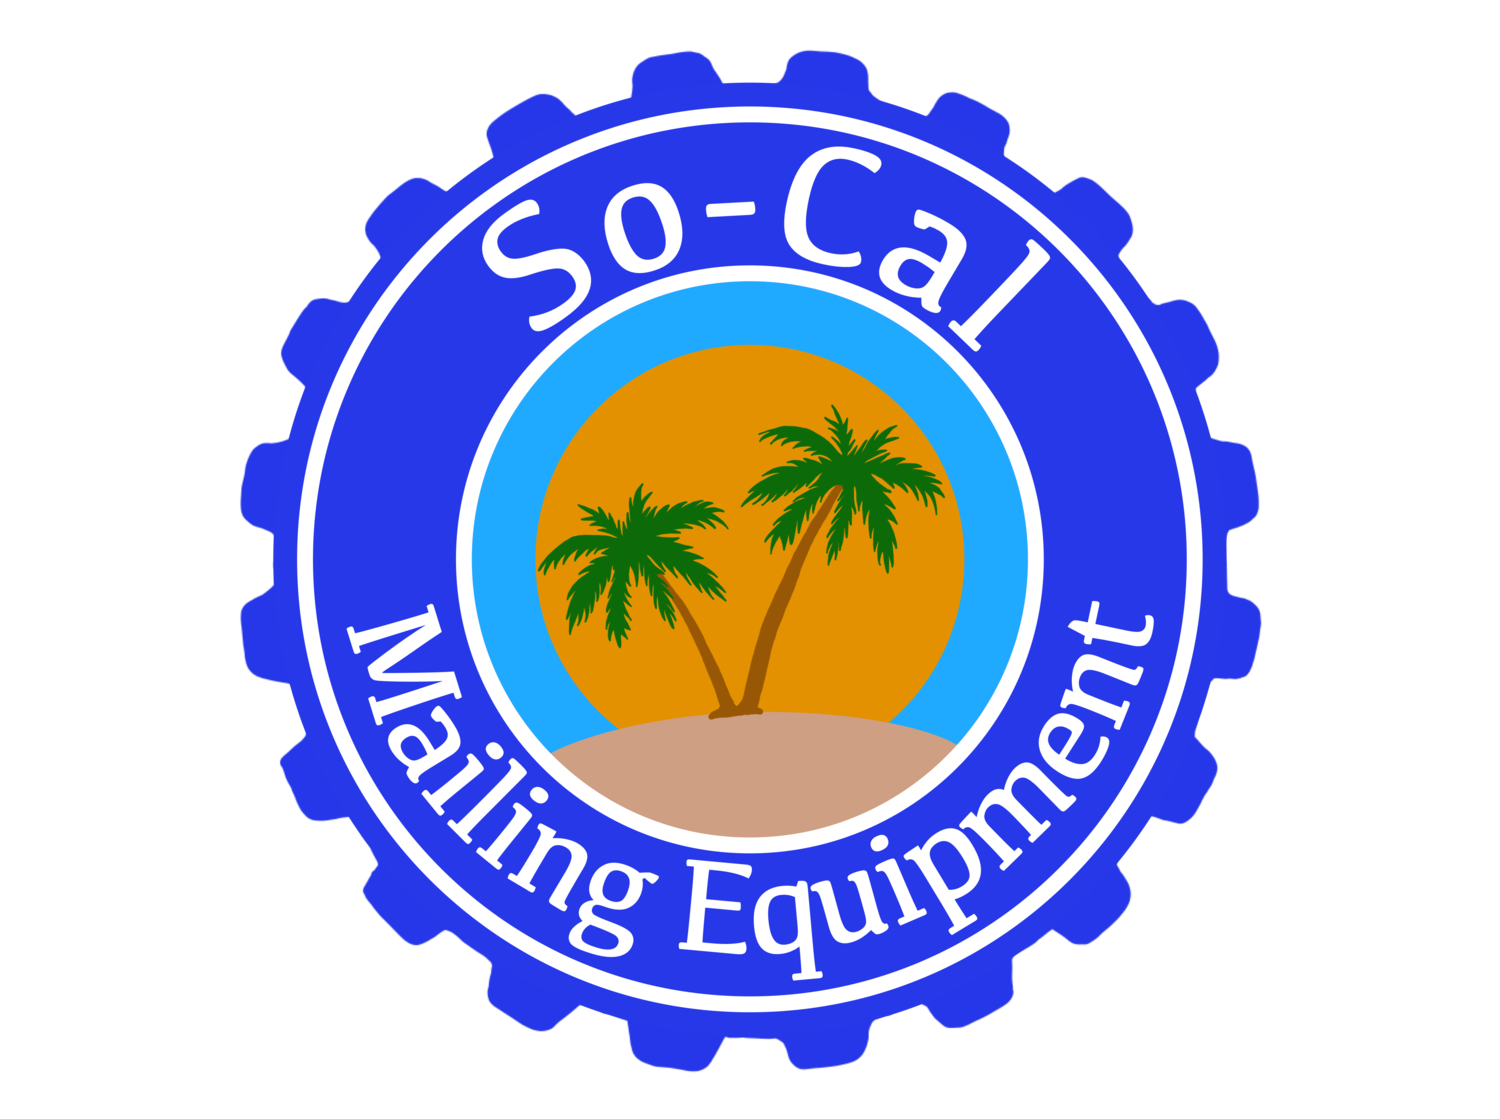 So-Cal Mailing Equipment